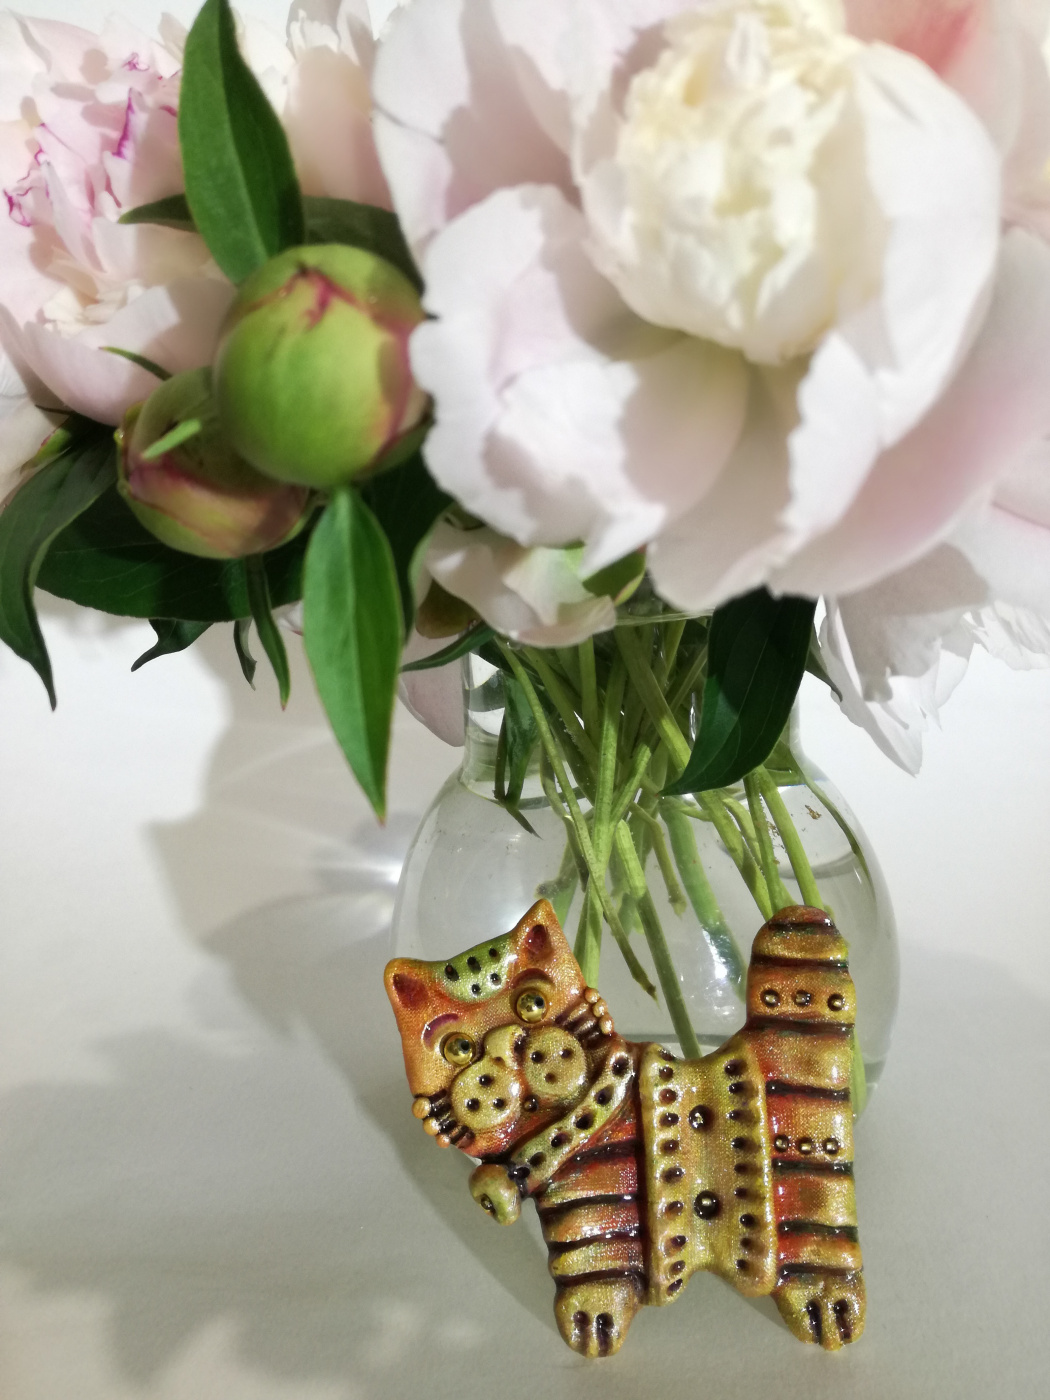 Ирина Александровна Лычагина. Cat brooch